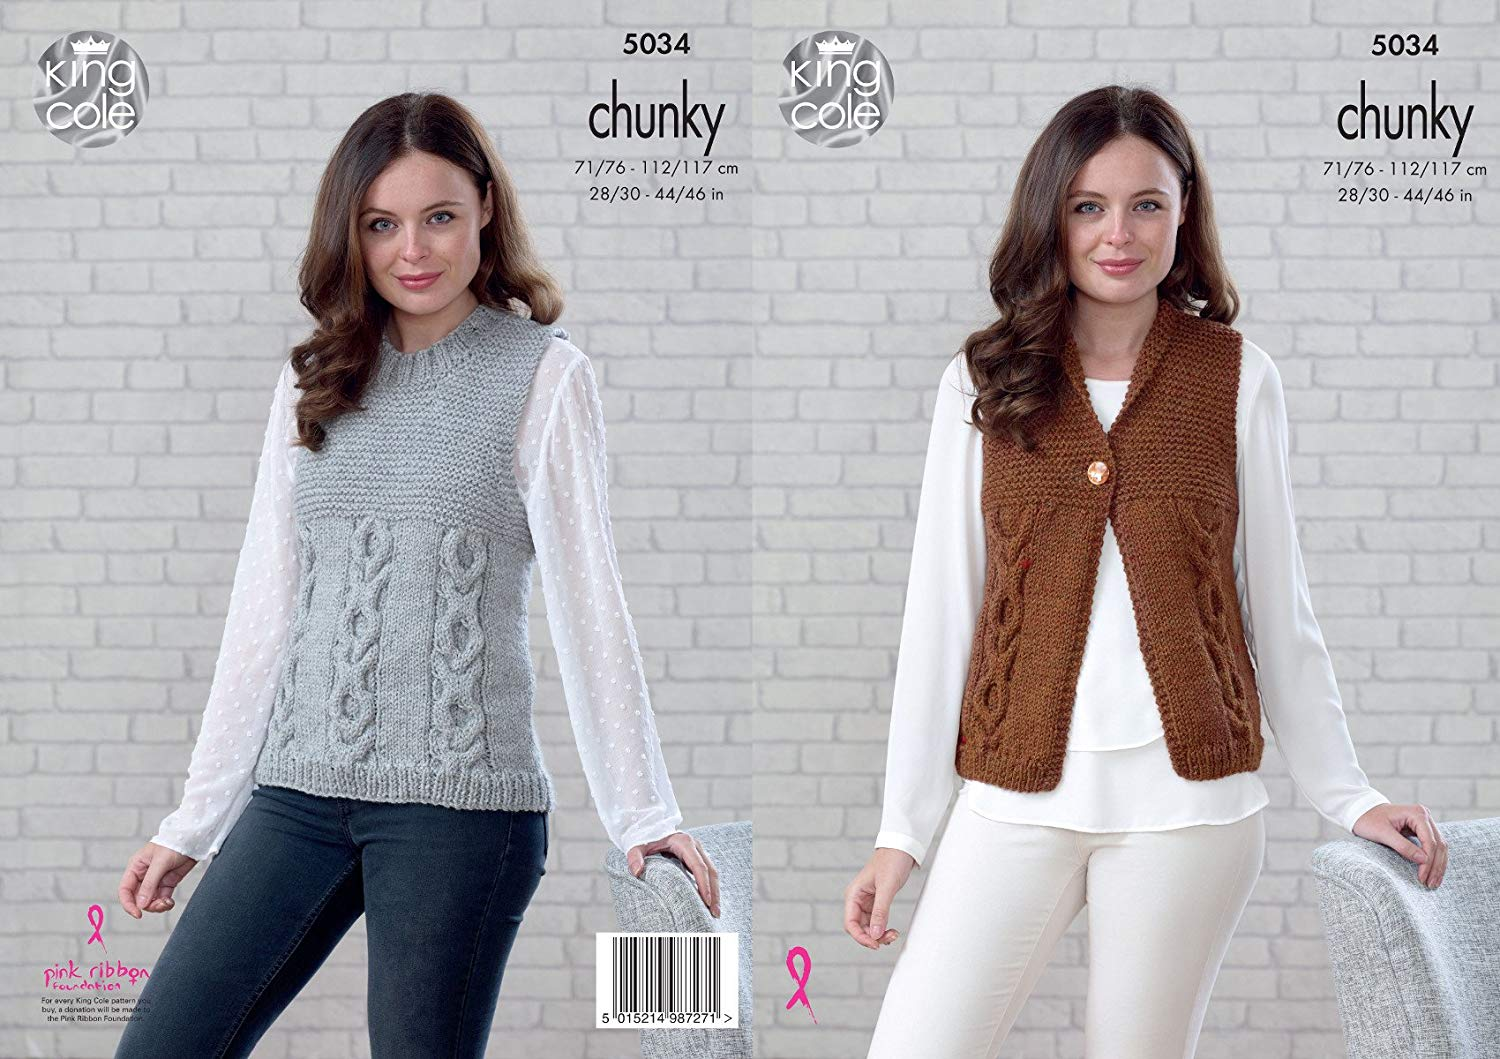 578371fdd Get Quotations · King Cole Ladies Chunky Knitting Pattern Womens Cabled  Waistcoat   Slipover (5034)